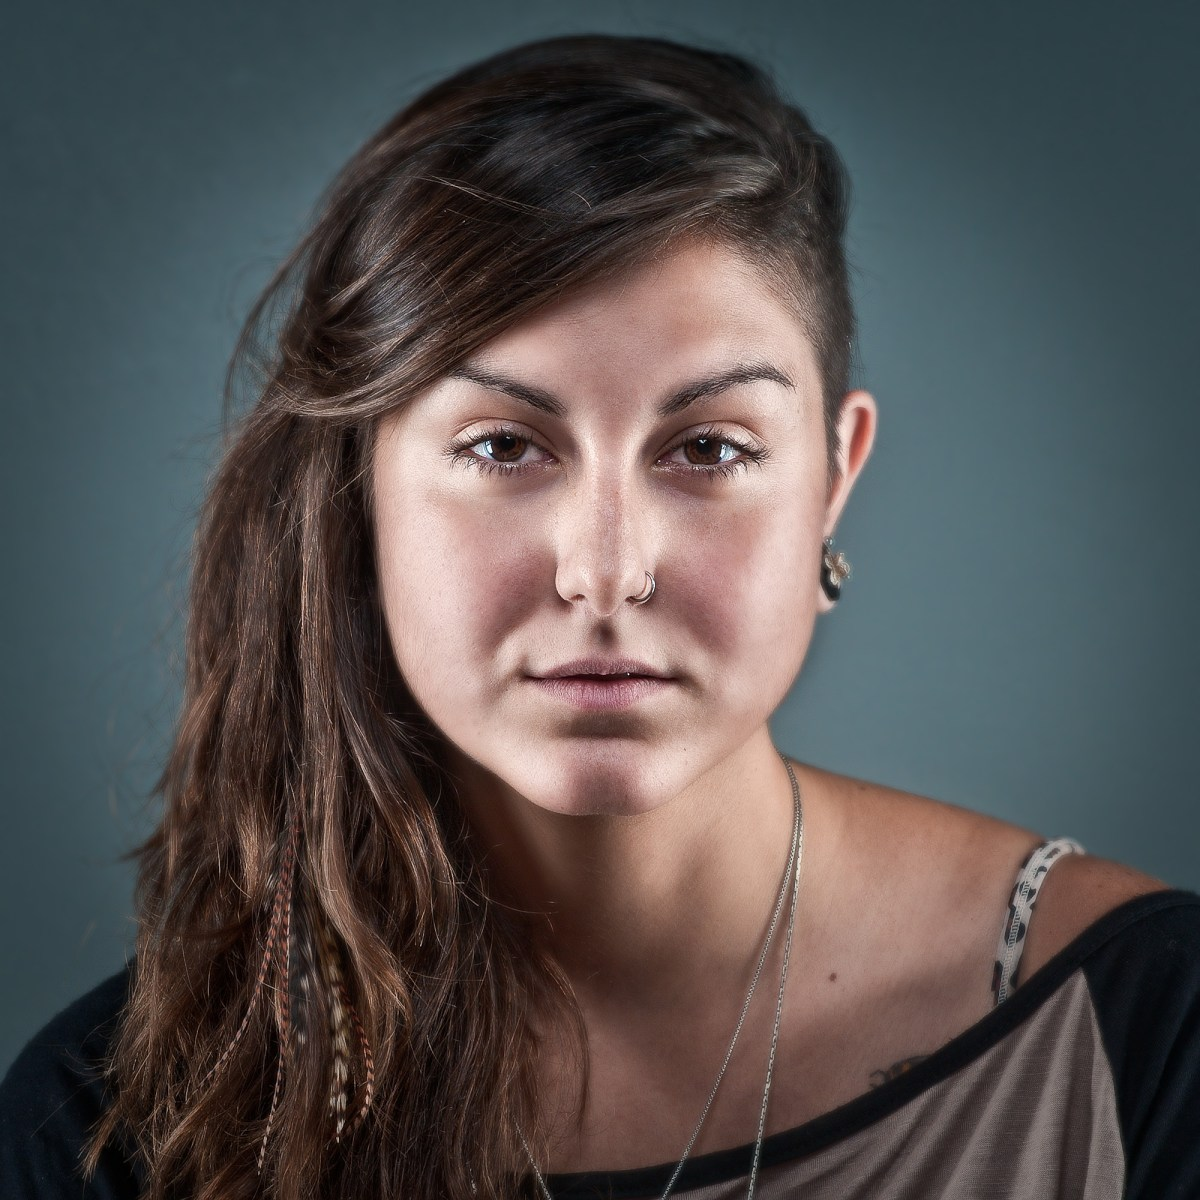 STARE Portrait Series. © Shawn Collie Photography